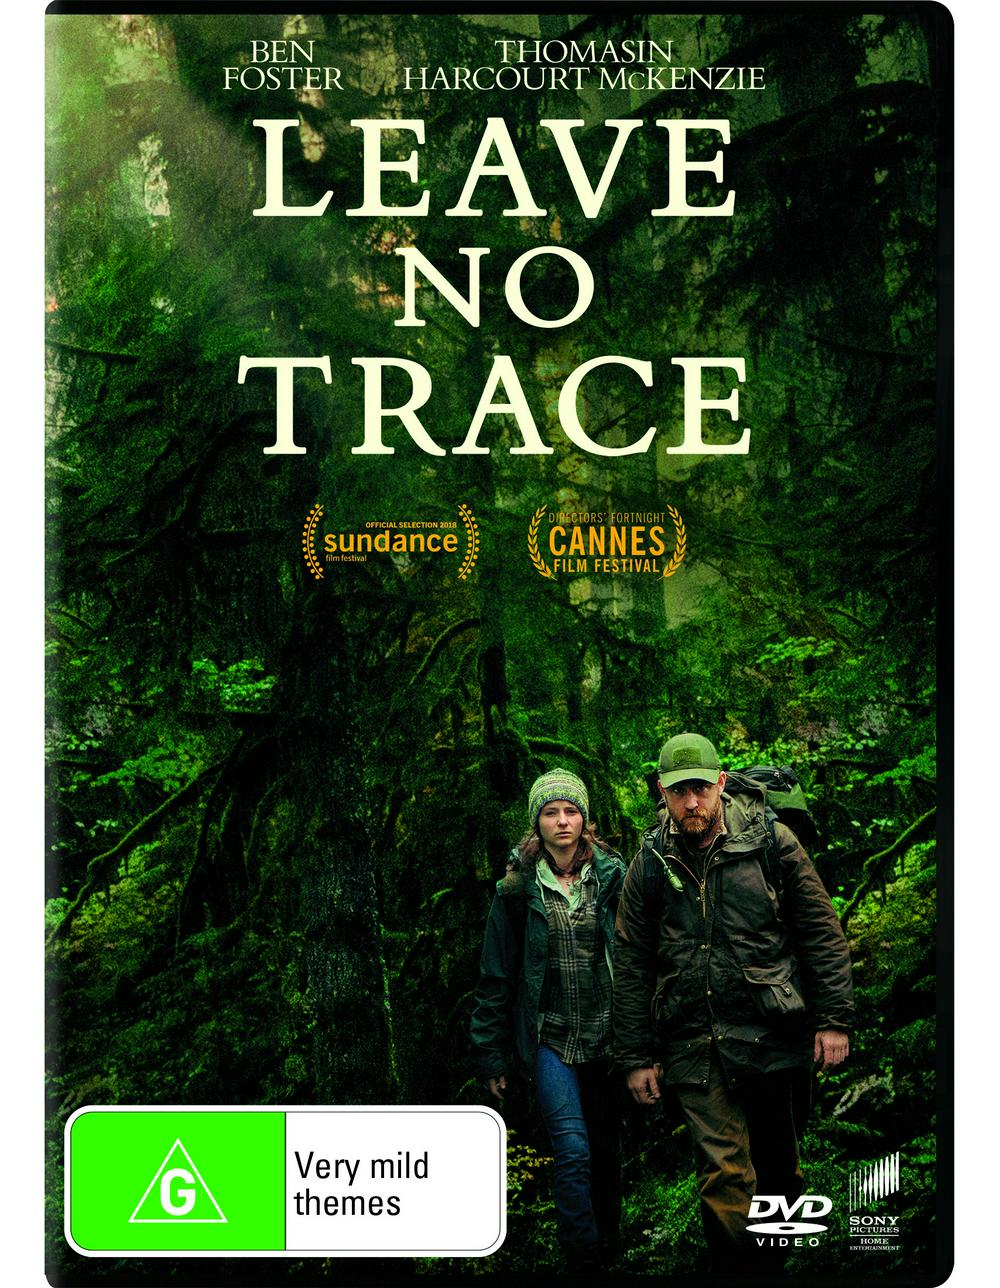 Leave No Trace